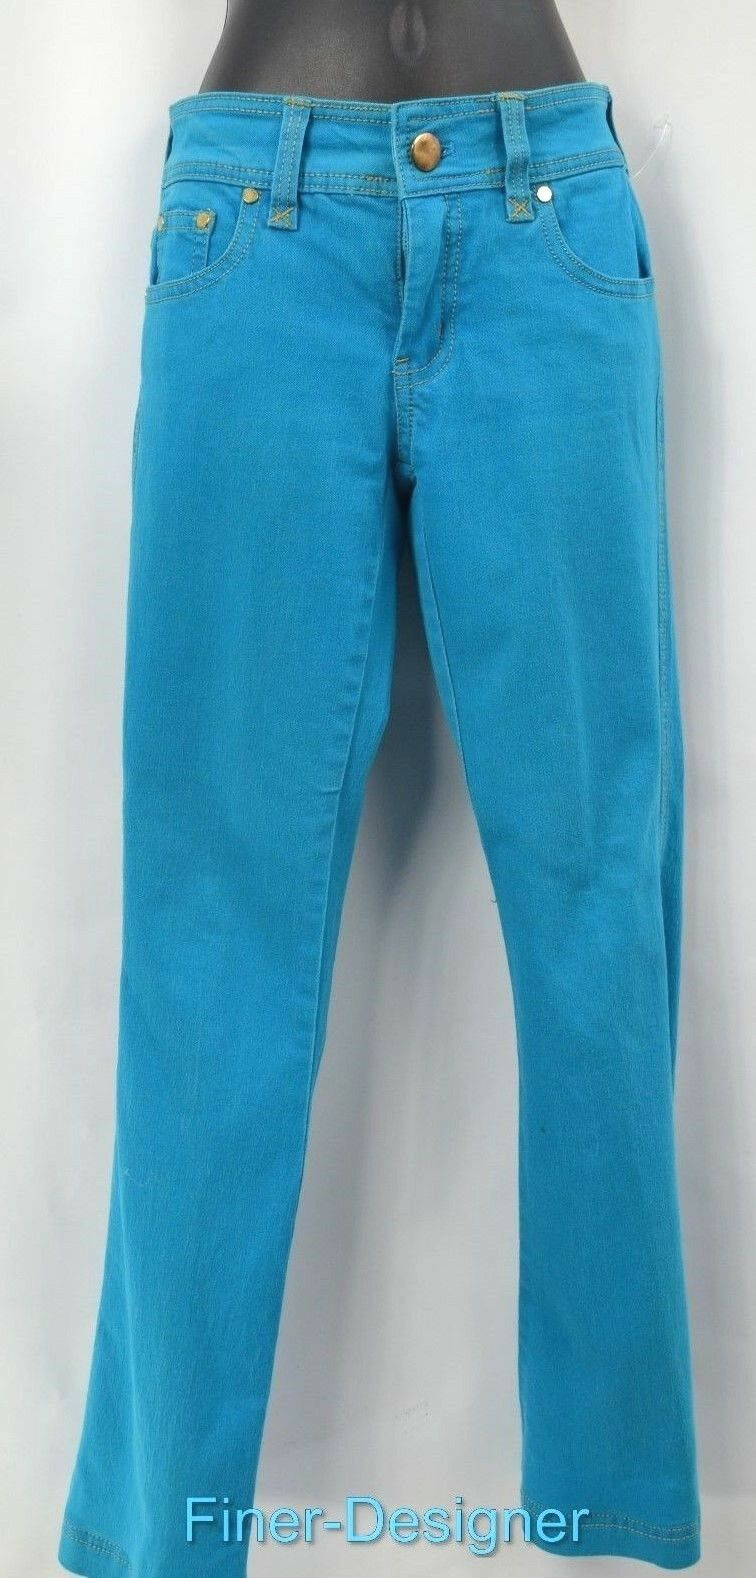 CACHE turquoise colord jeans stretch pants jean slim trousers boot cut 0 XS NEW